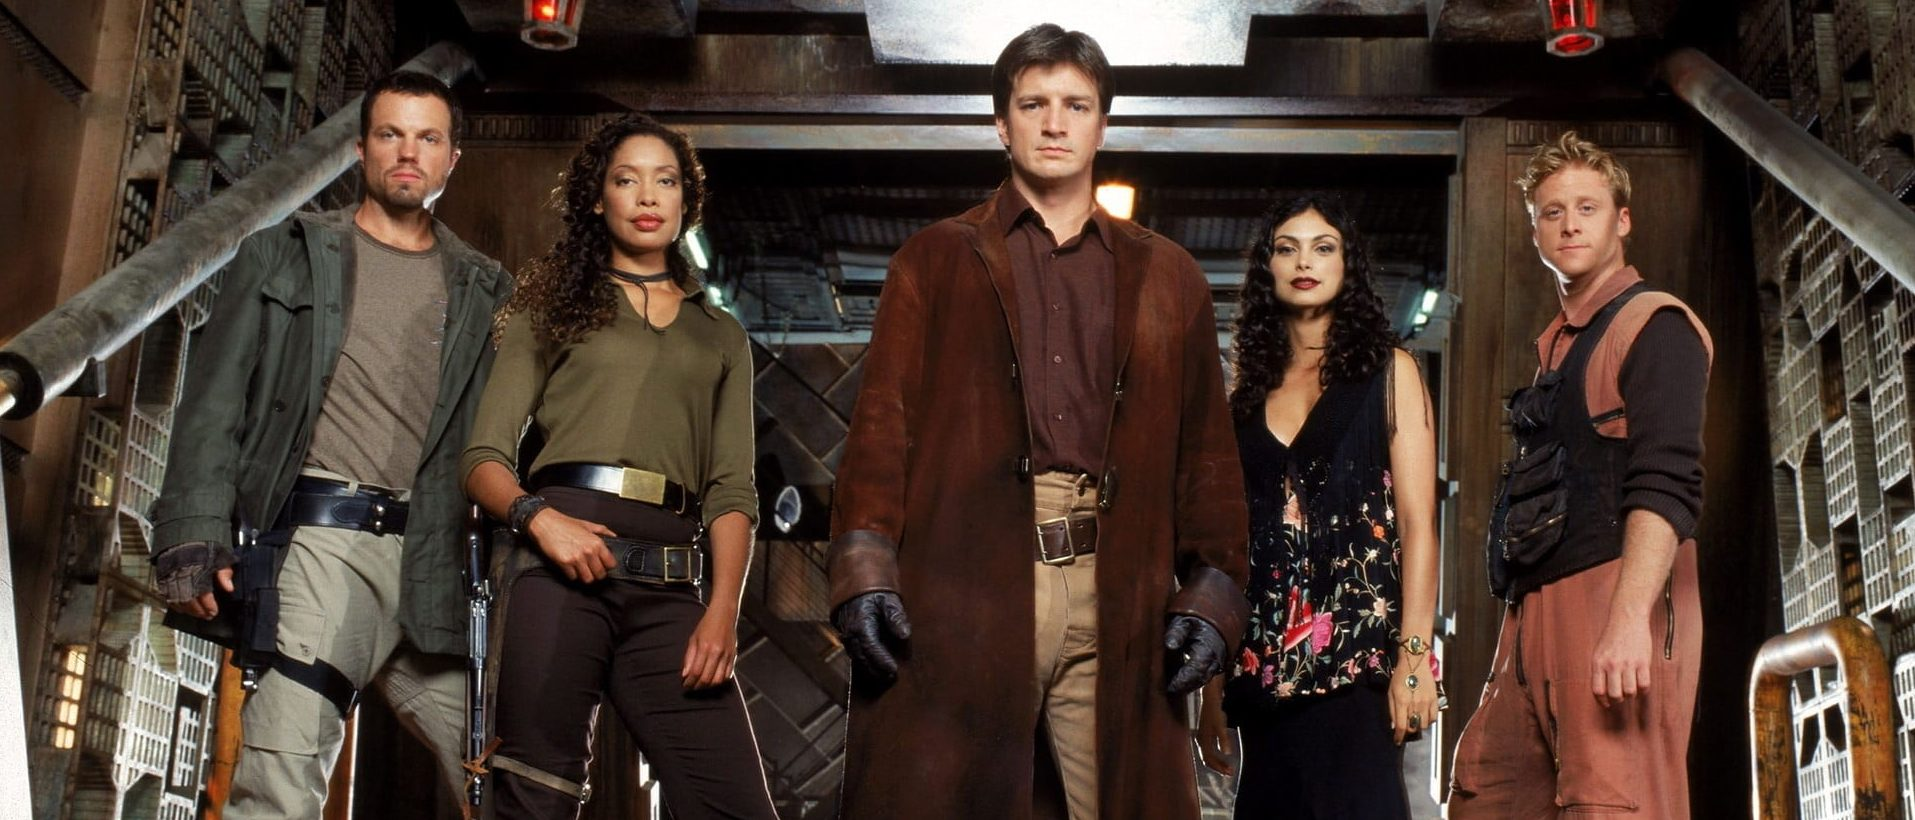 Firefly is available to watch on Amazon Prime Video